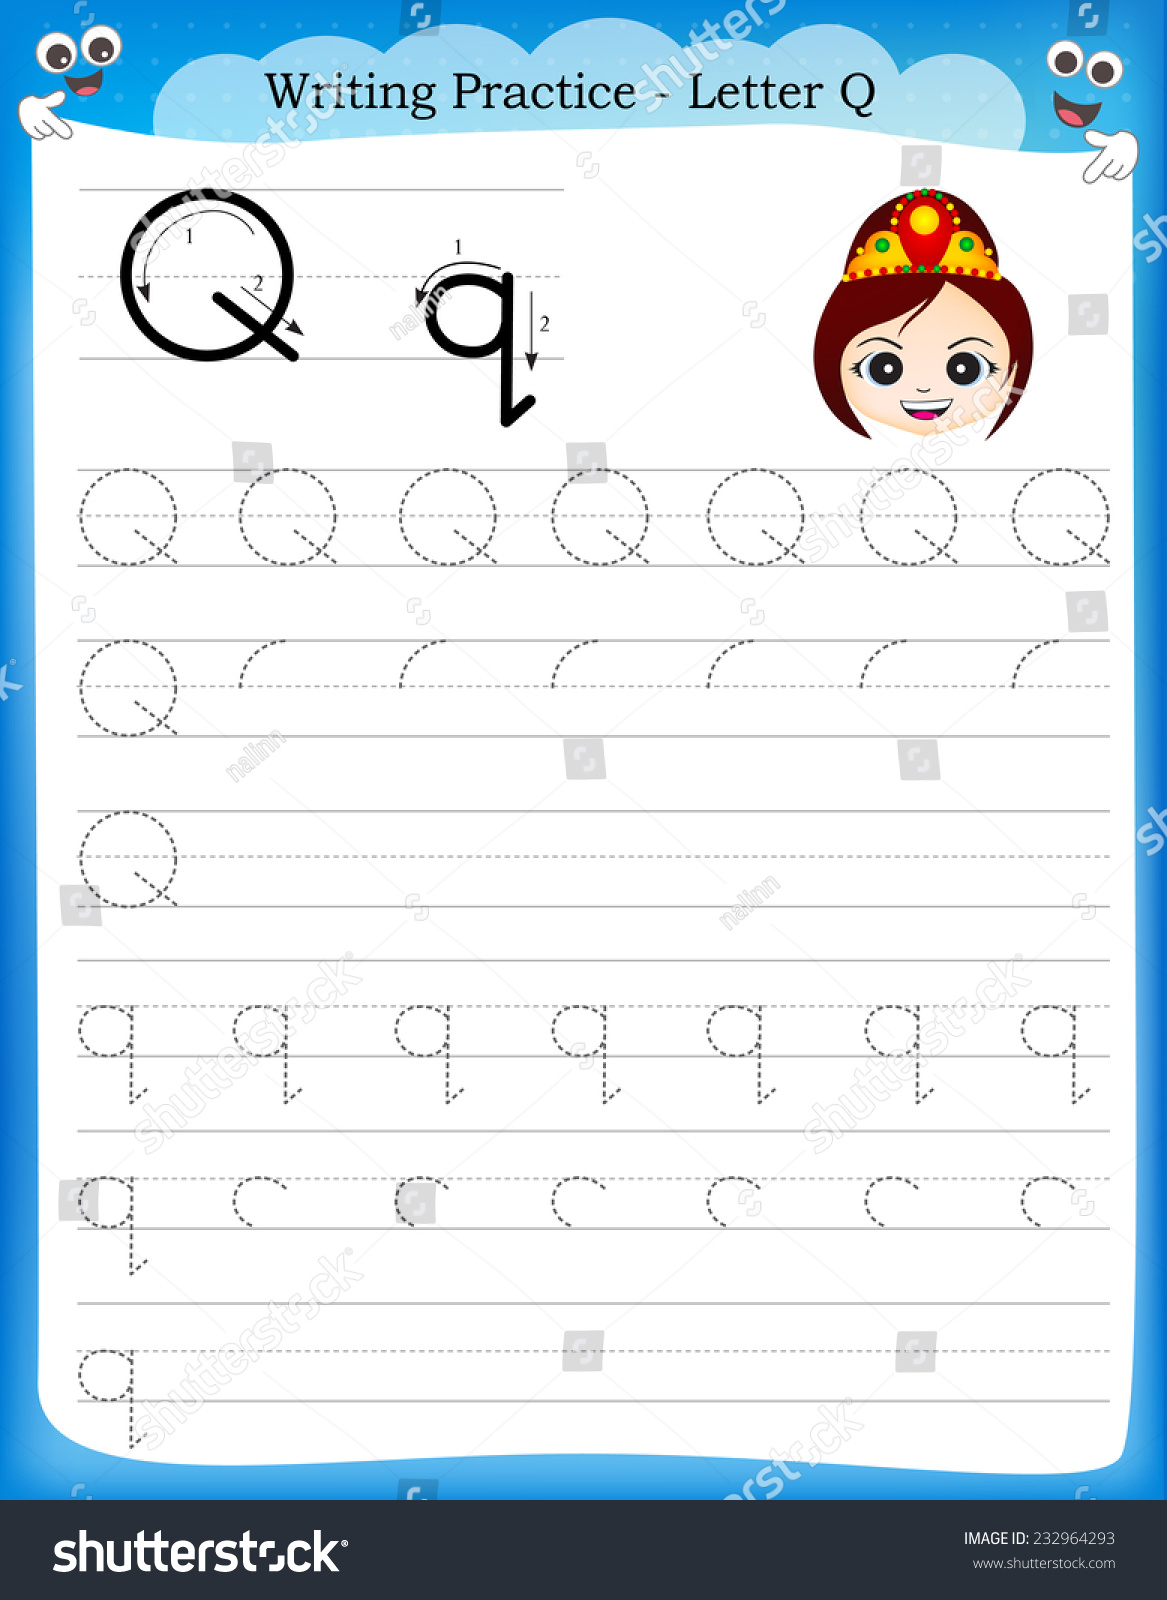 Writing Practice Letter Q Printable Worksheet With Clip